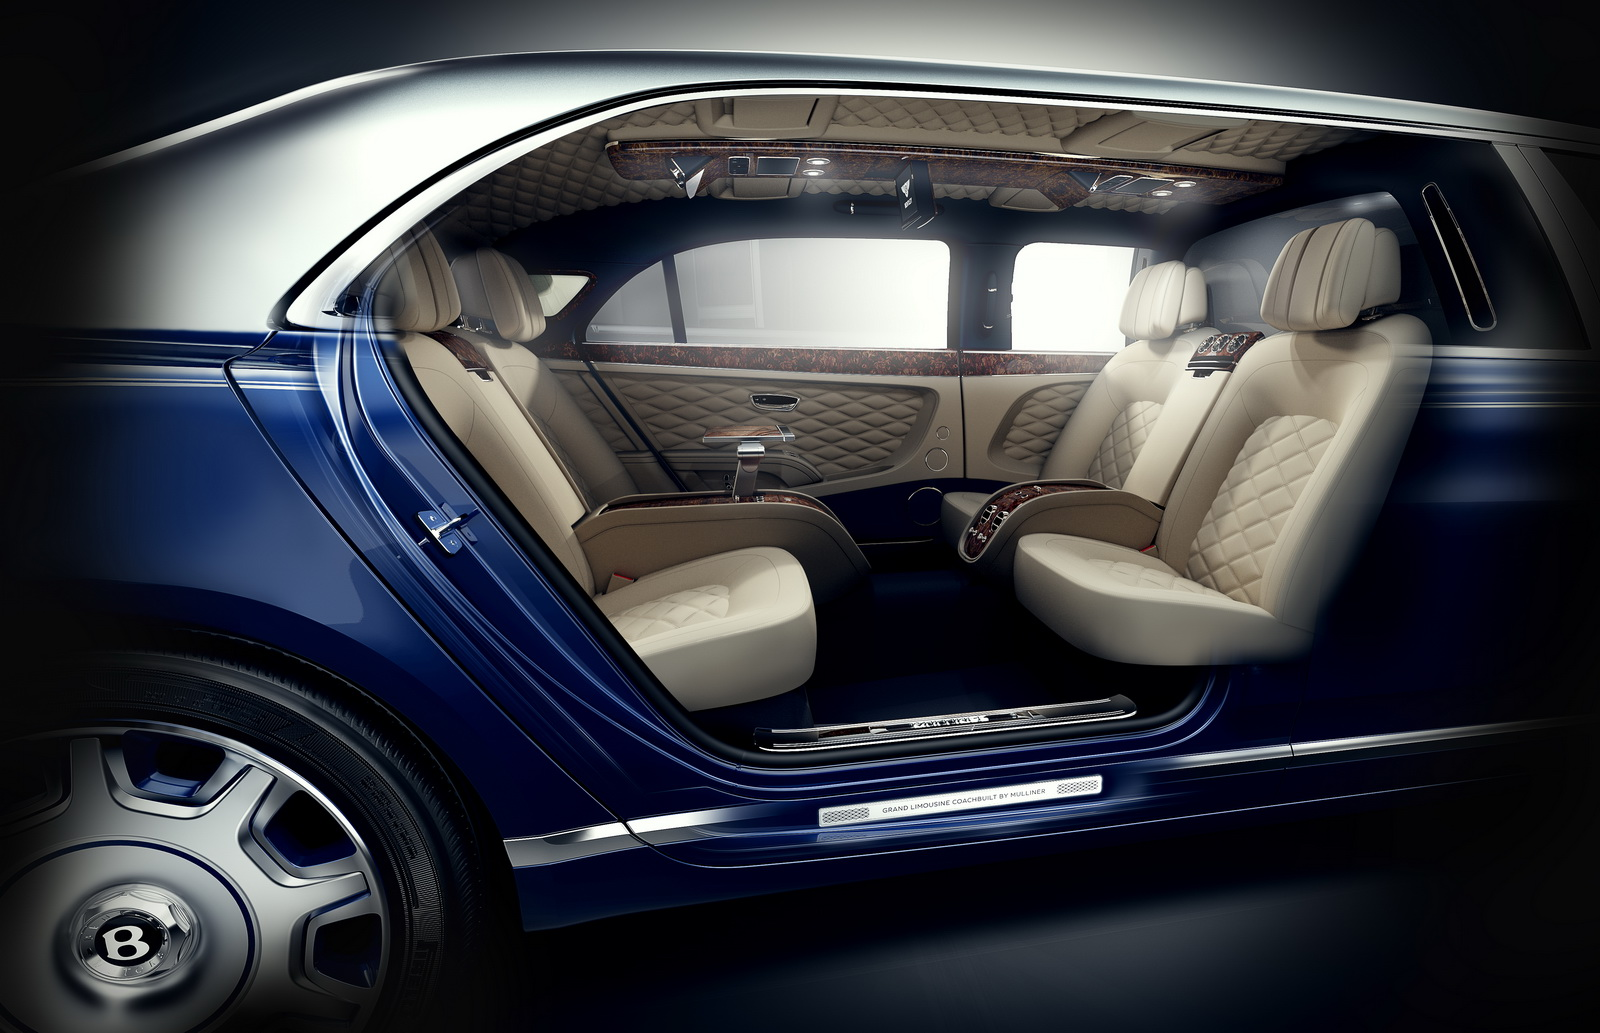 Bentley reveals stretched mulsanne grand limousine by - Interior design jobs without a degree ...